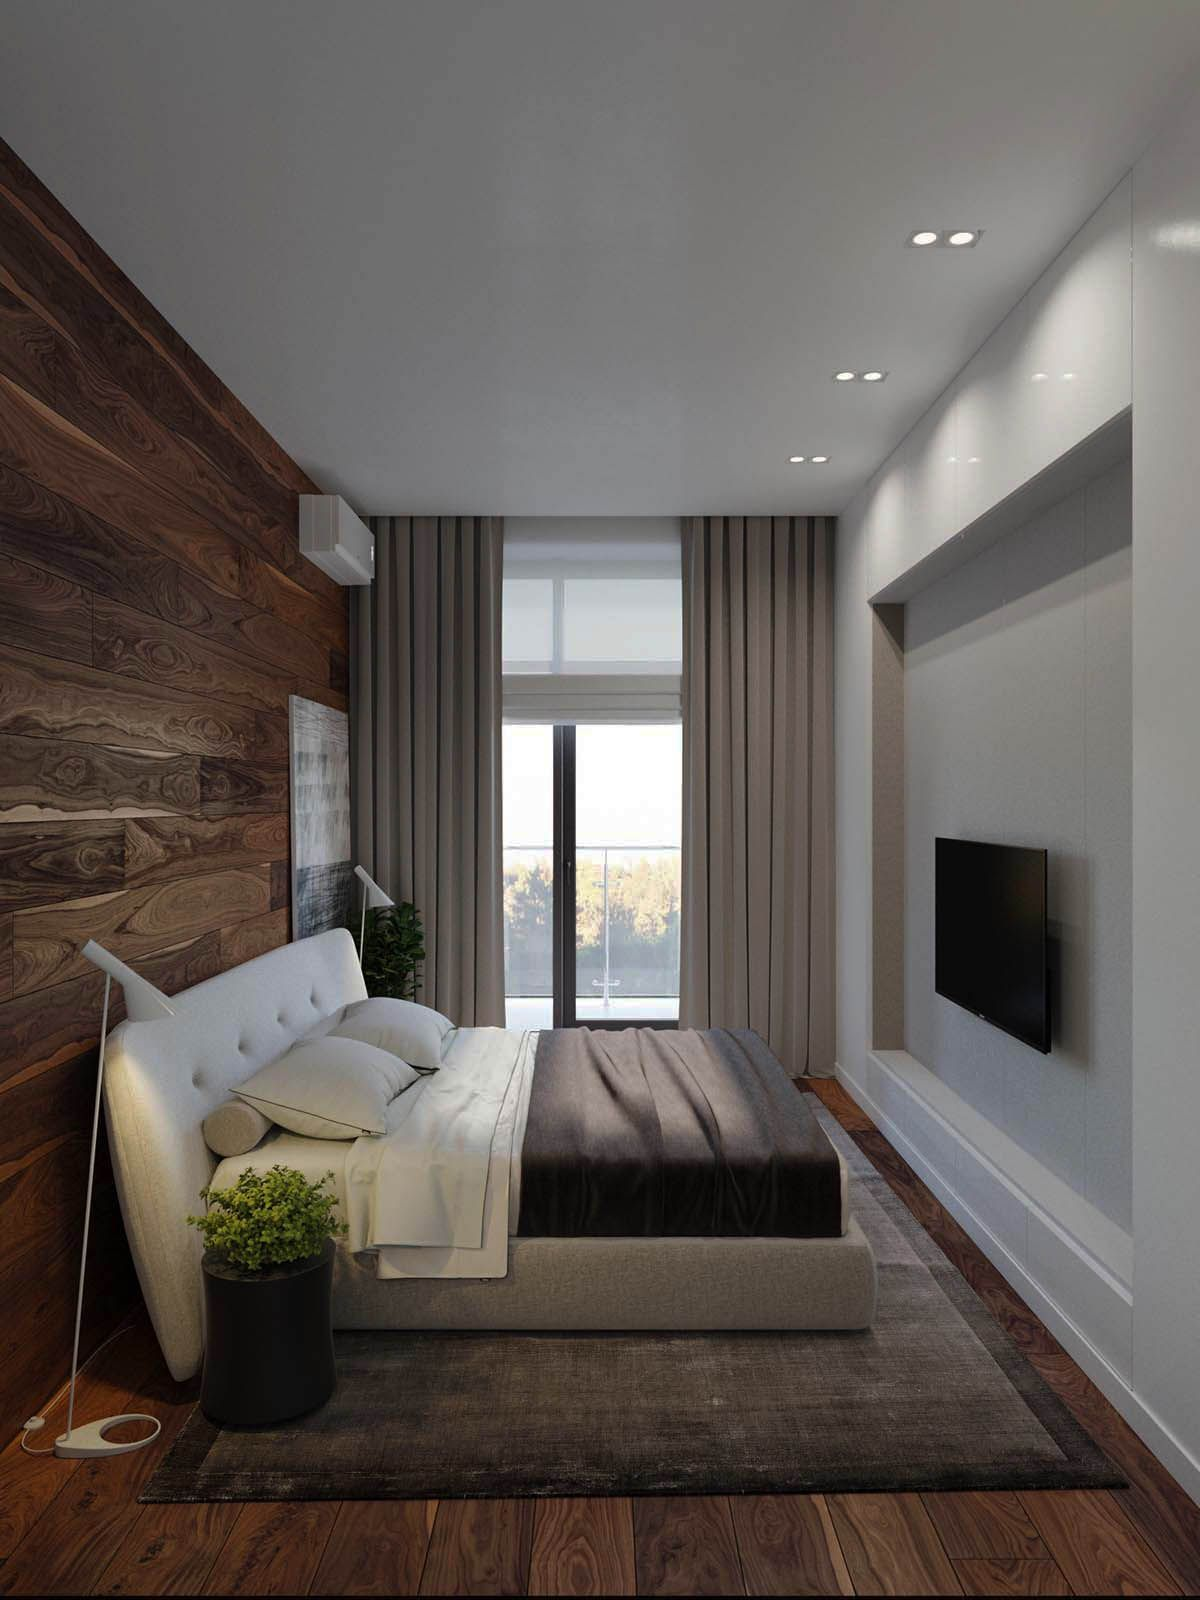 Best 1 Bedroom Apartments River North Only On Smarthomefi Com Apartment Bedroom Design Modern Apartment Design Apartment Bedroom Decor